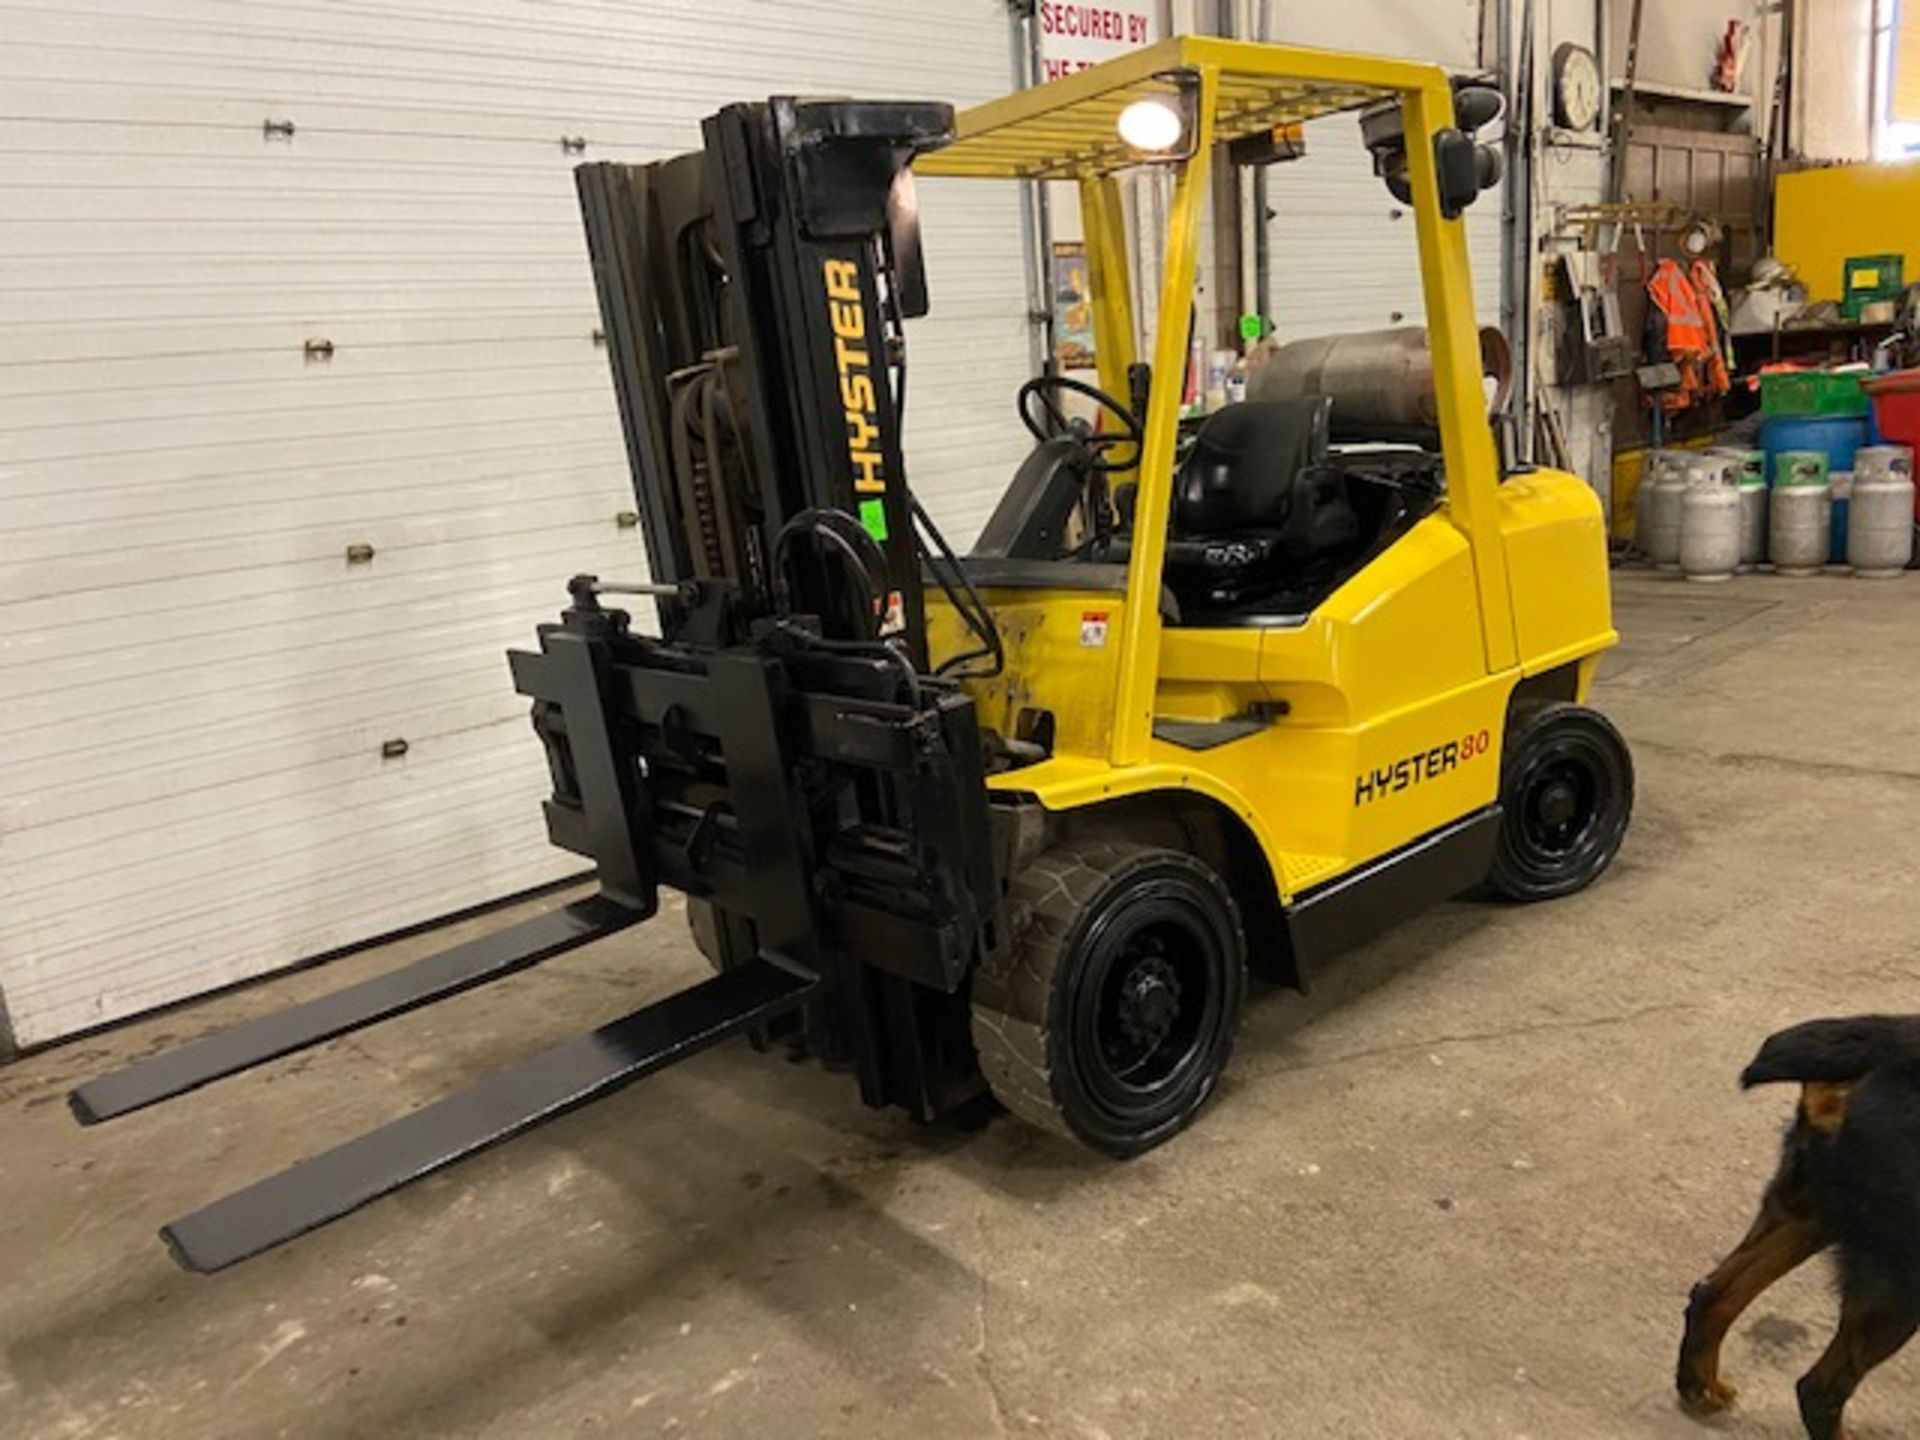 FREE CUSTOMS - Hyster 8000lbs OUTDOOR Forklift with sideshift fork positioner & 3-stage mast LPG - Image 2 of 3